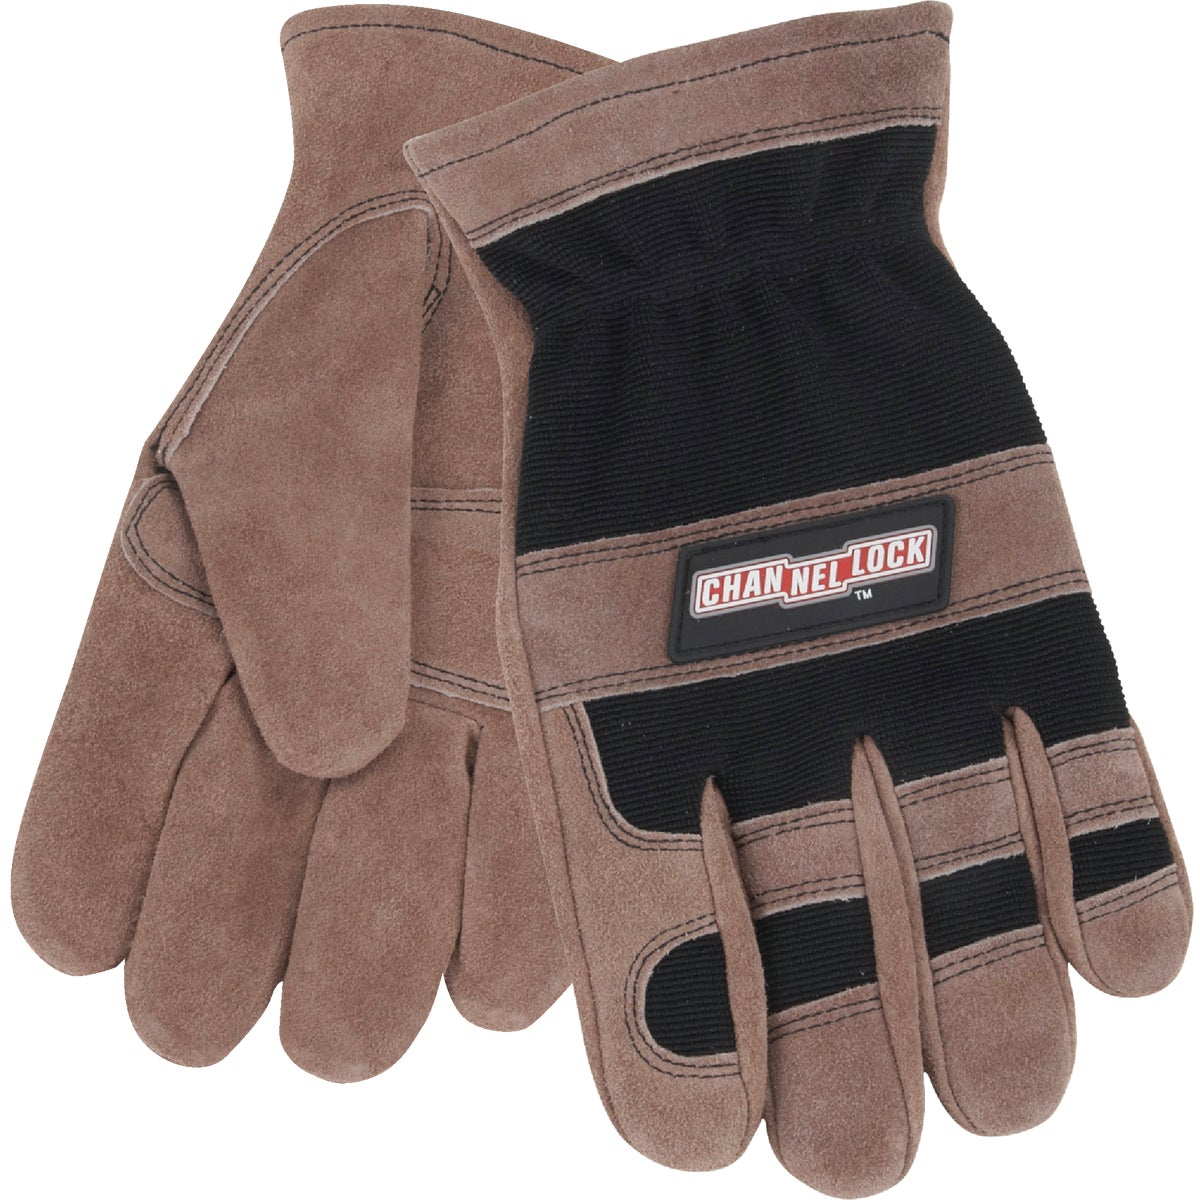 XL SPLIT LEATHER GLOVE - 701789 by Channellock®